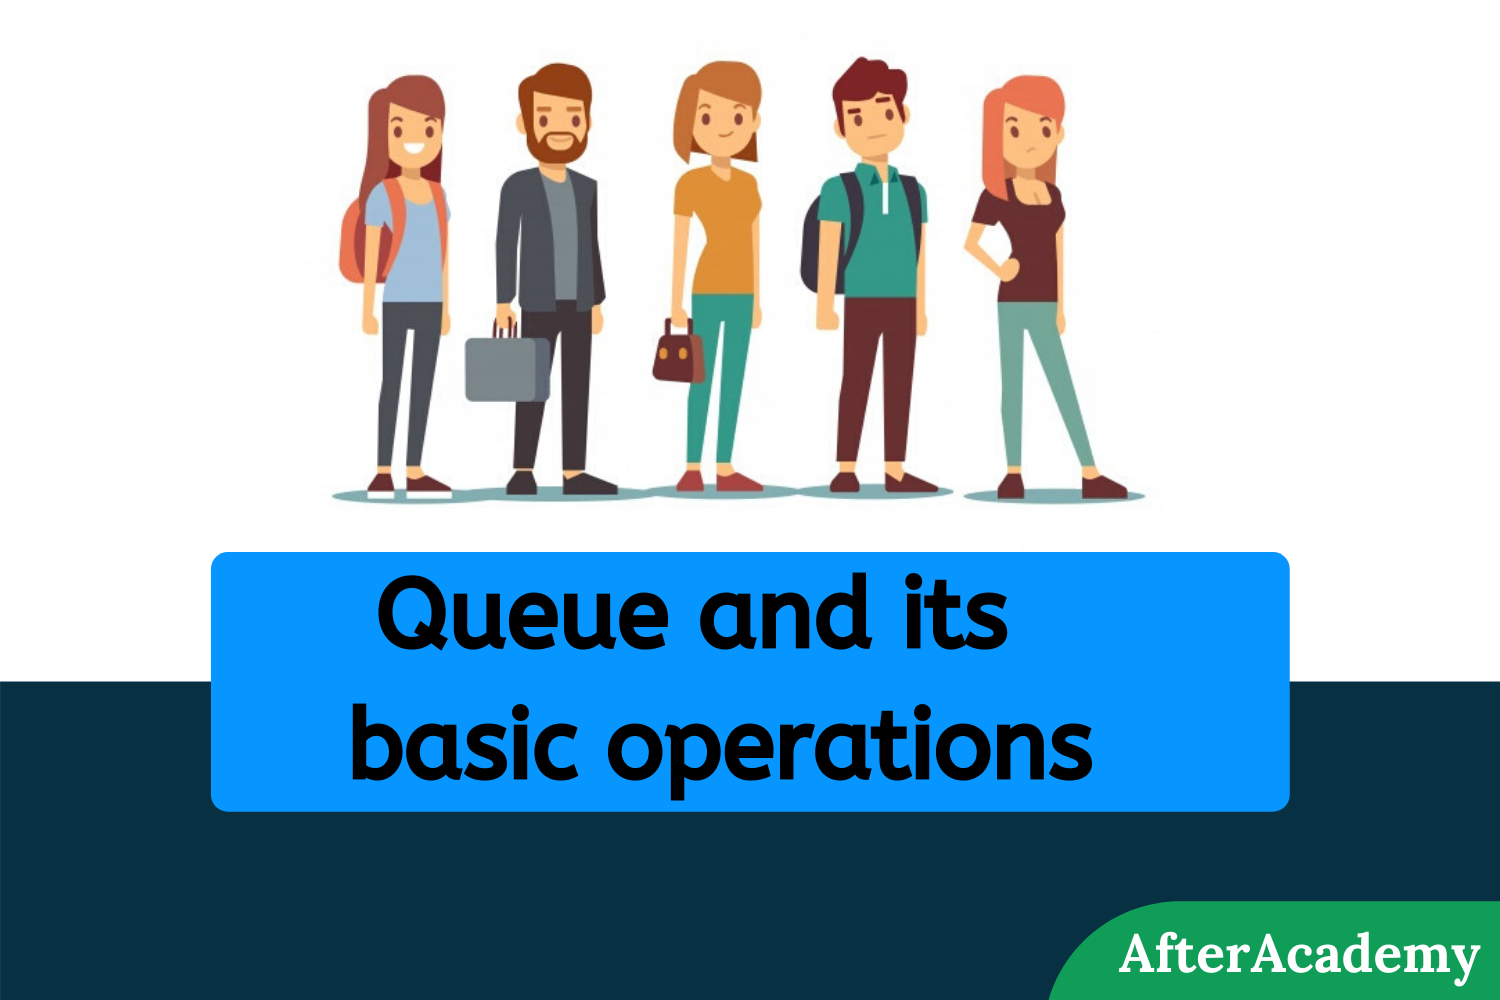 Queue and its basic operations